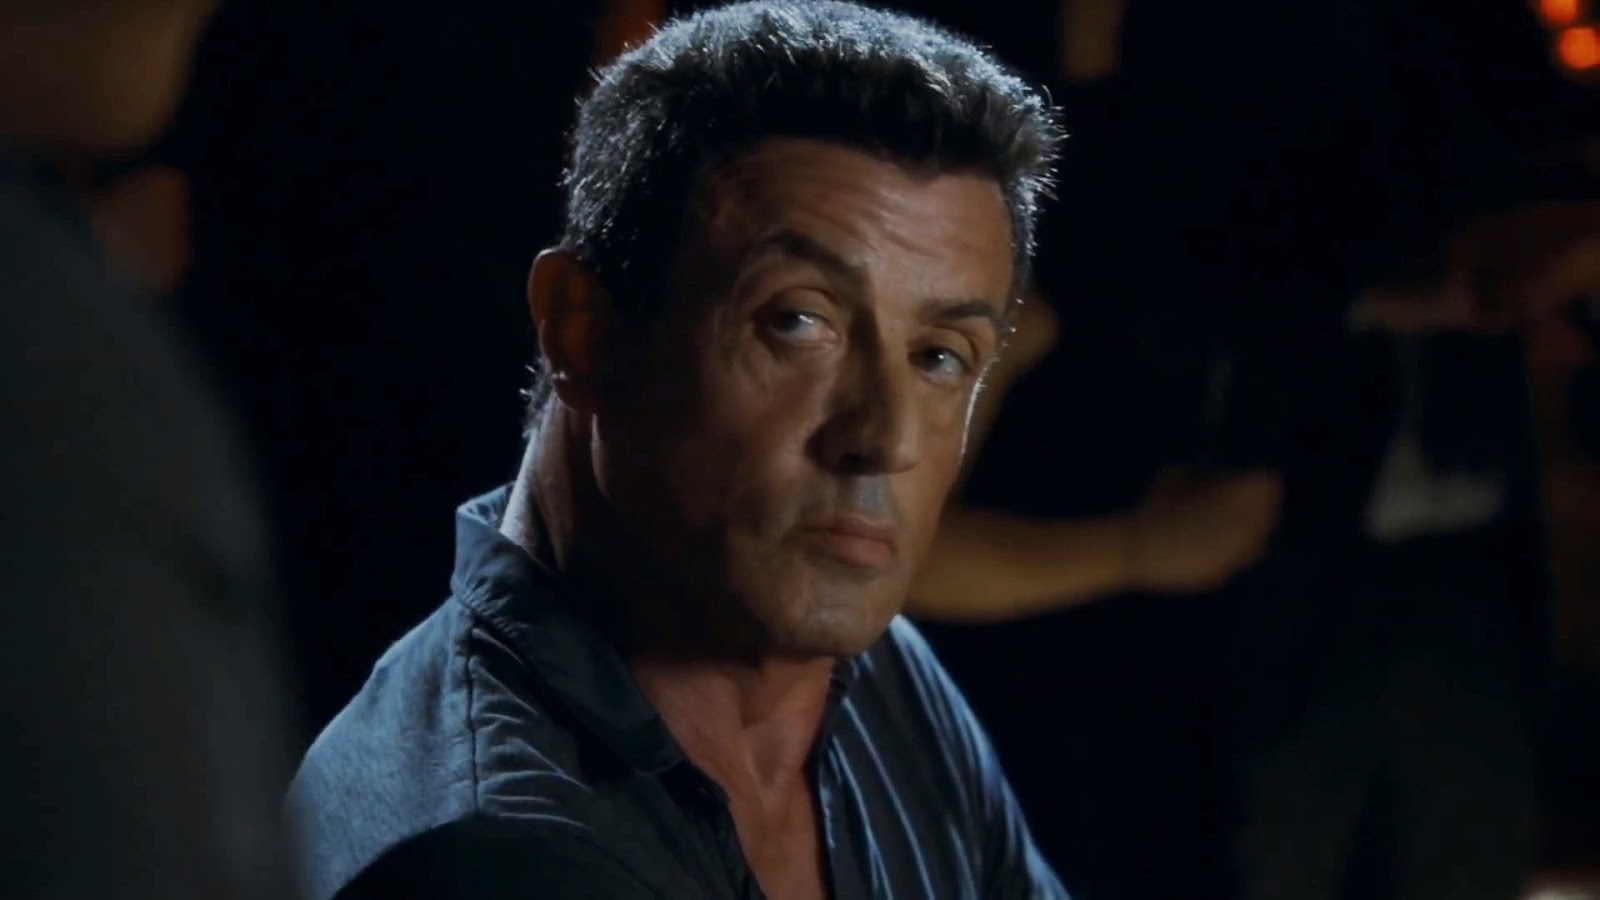 Bullet to the head - Sylvester Stallone